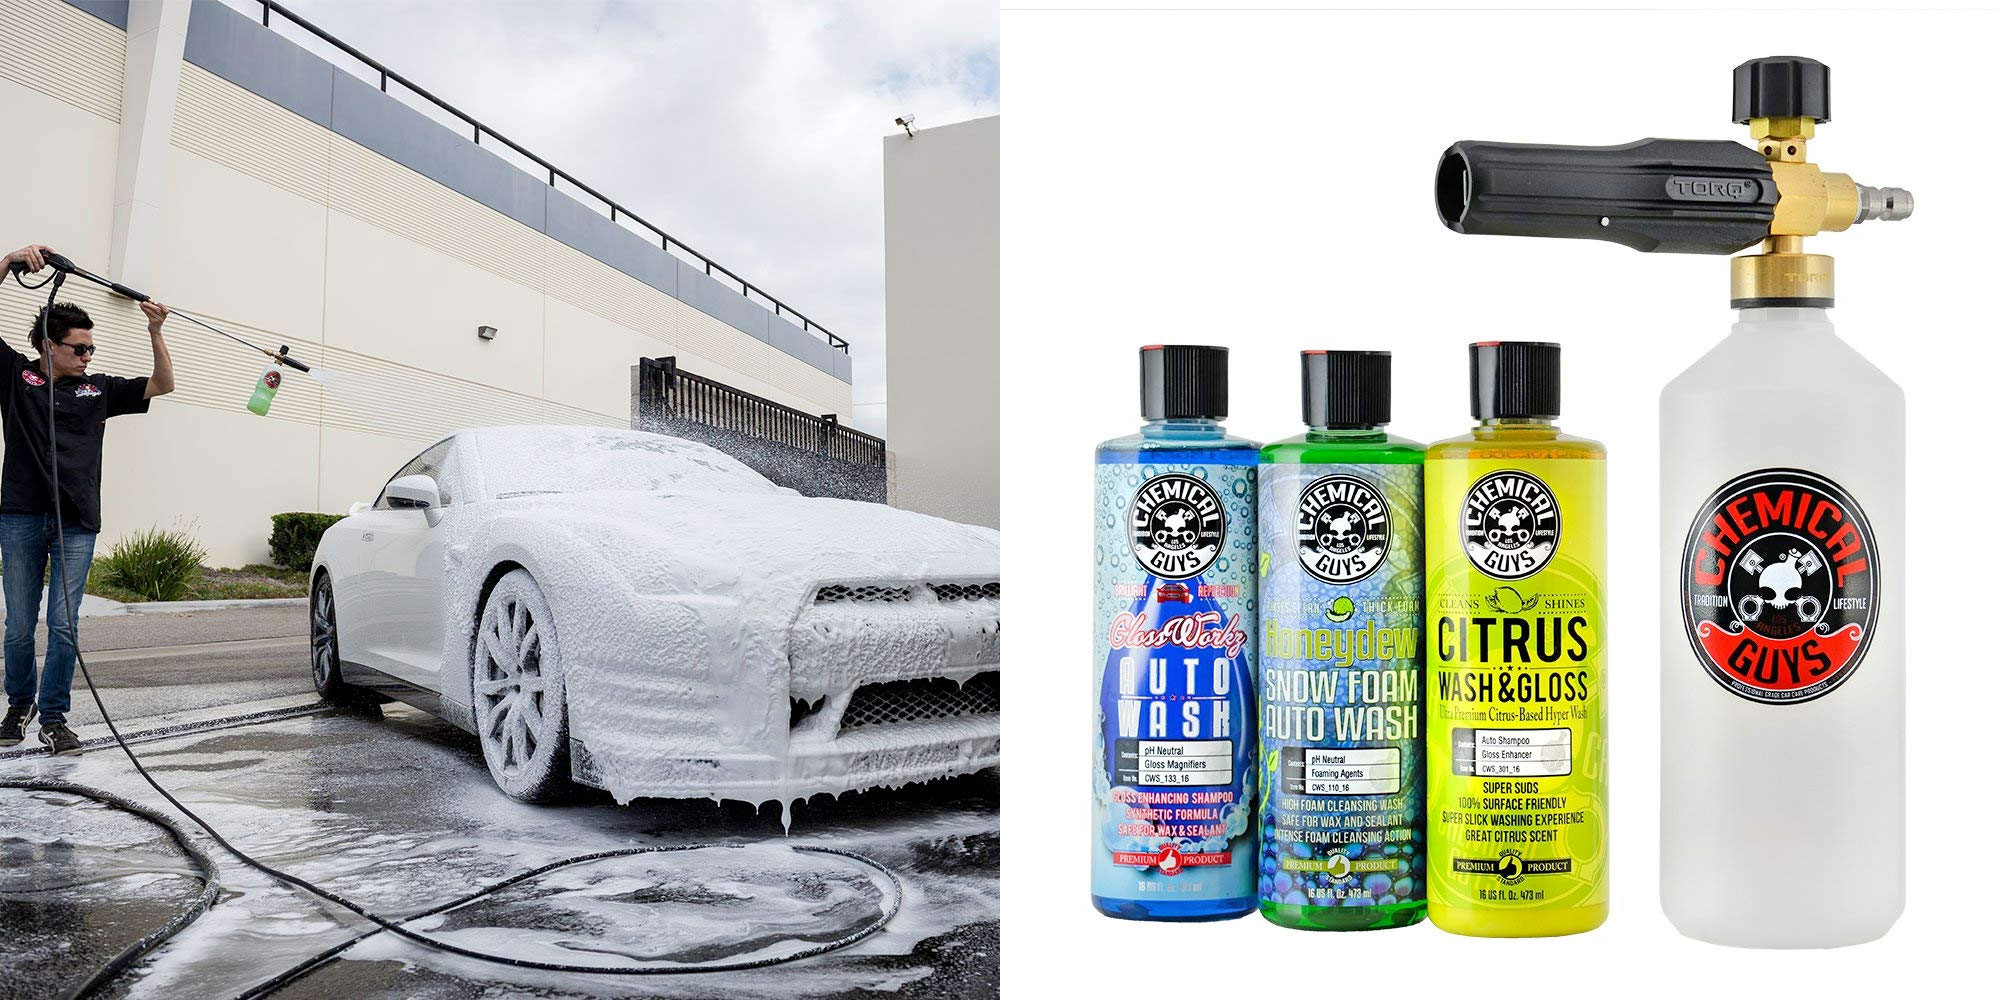 This Chemical Guys foam cannon + soap is a perfect buy to wash your car: $69.50 (Reg. $90)